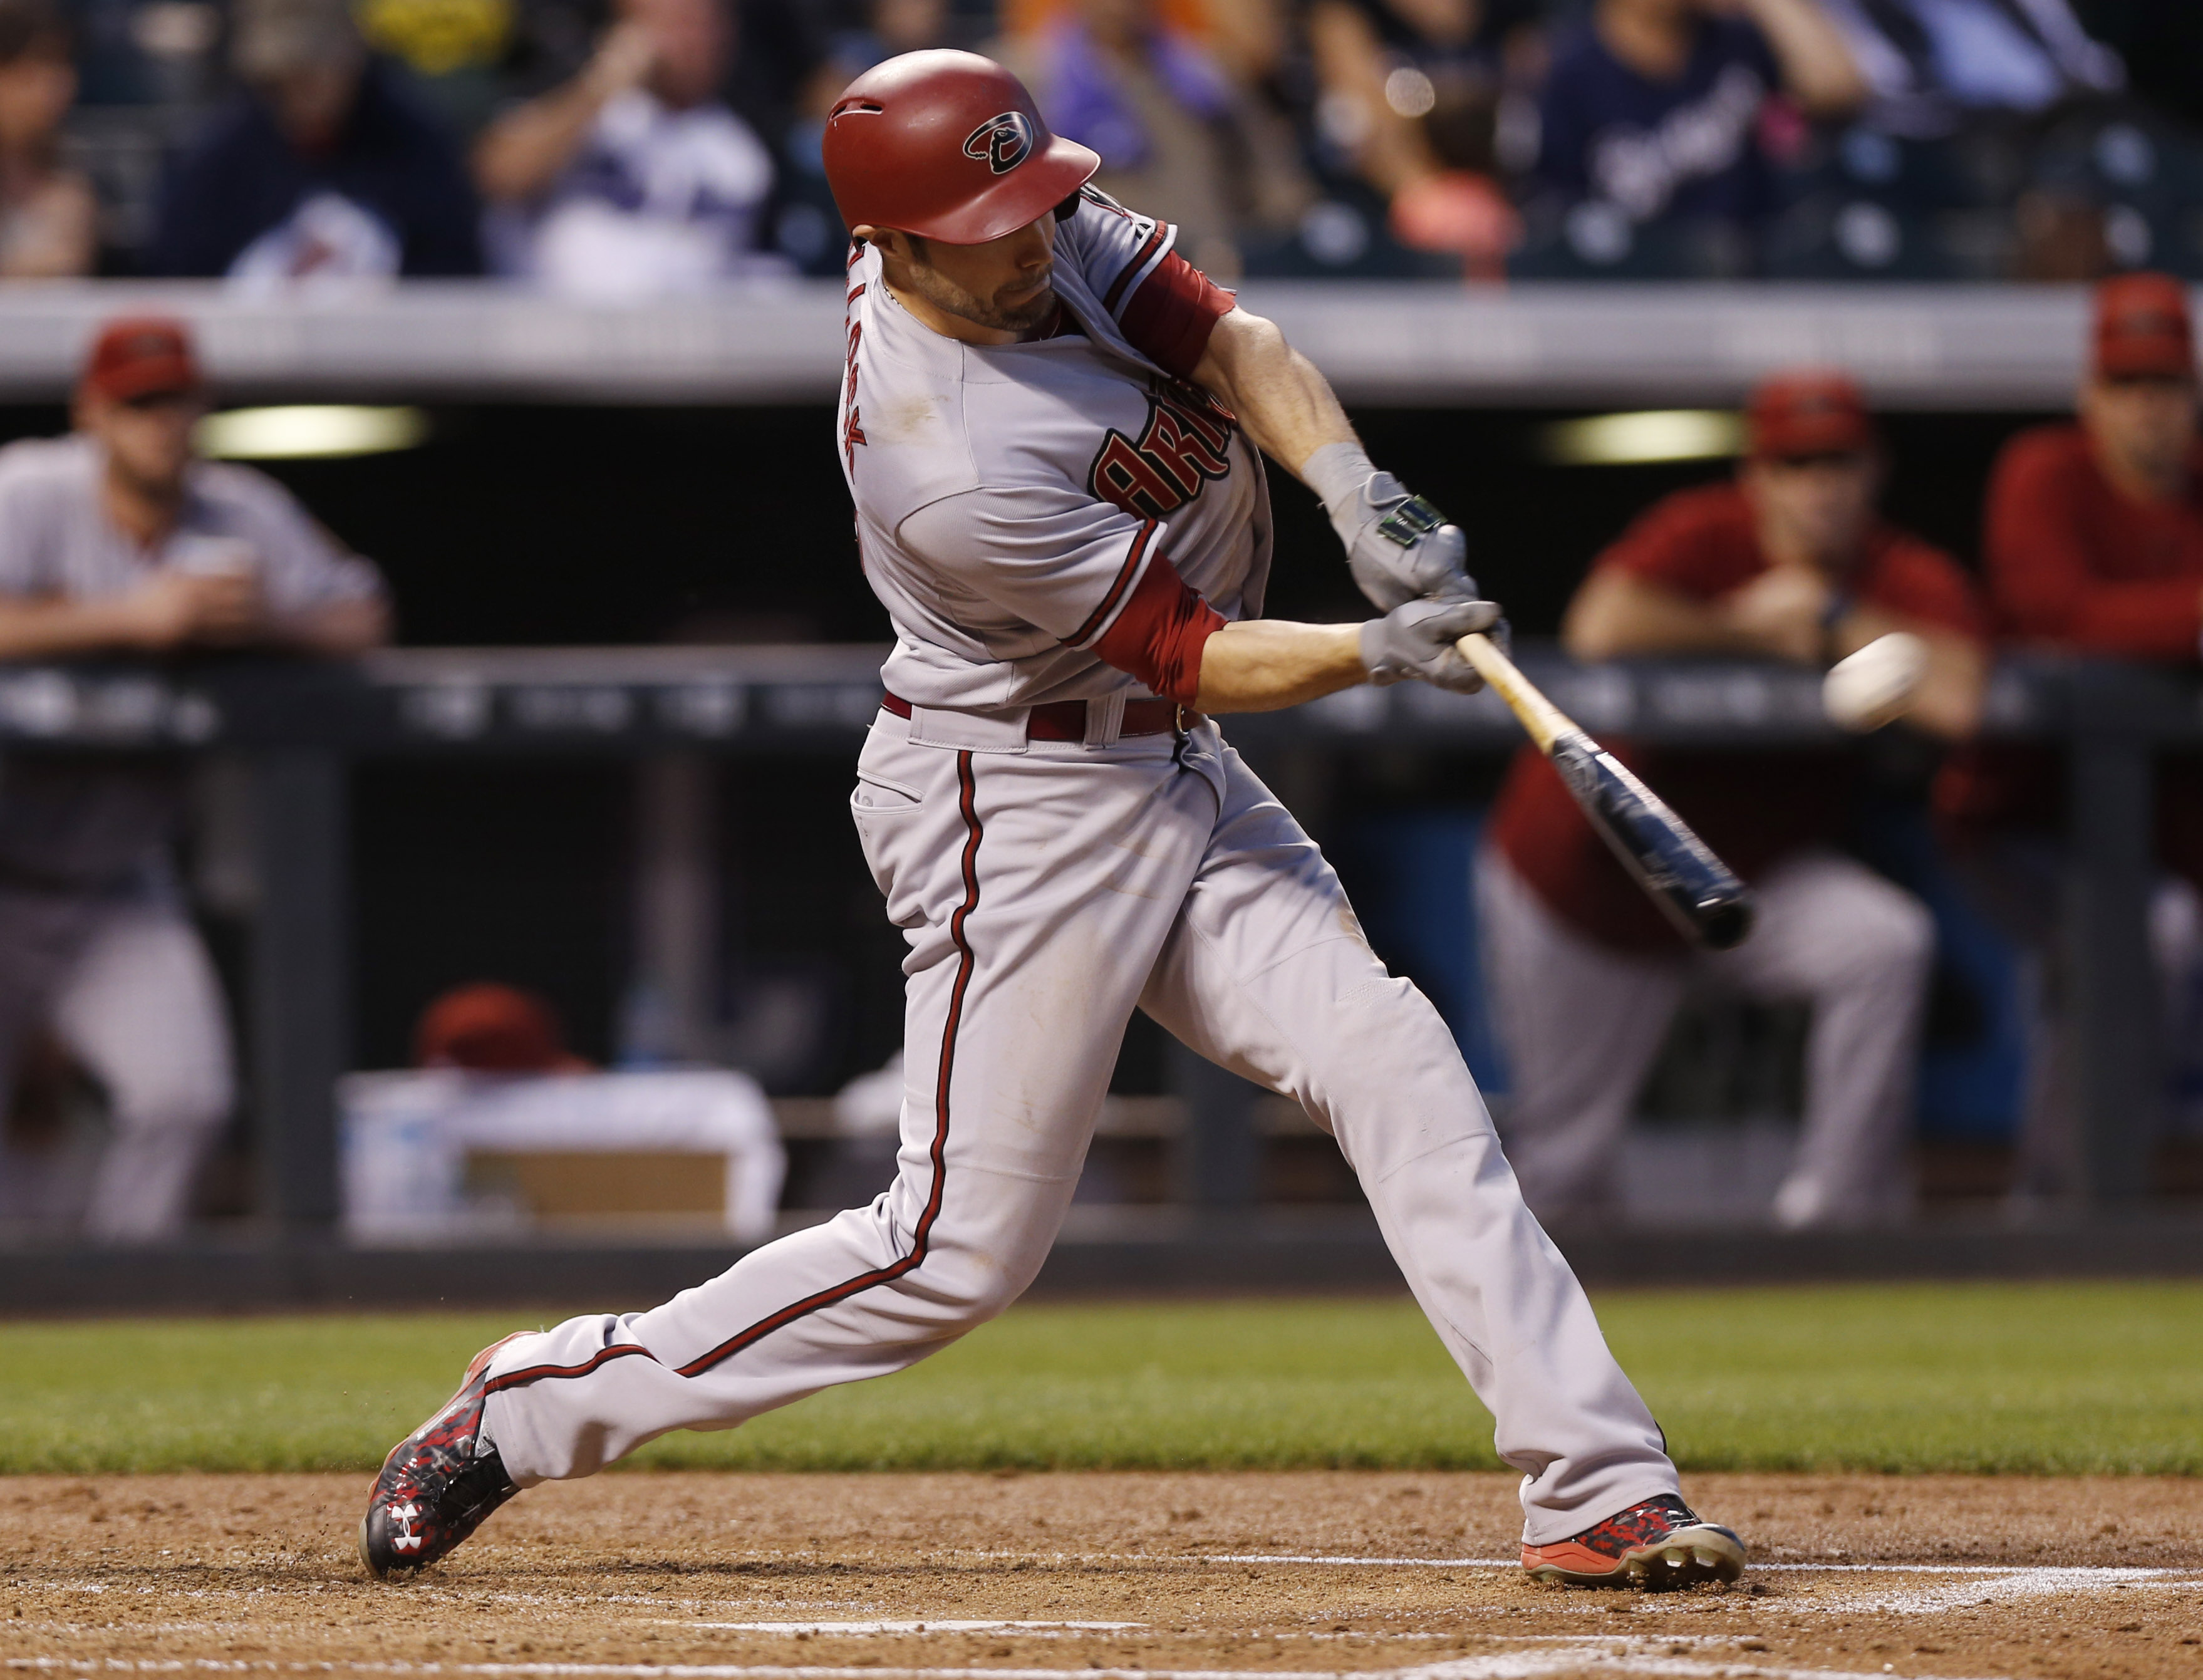 Arizona Diamondbacks' A.J. Pollock connects for a two-run home run off Colorado Rockies starting pitcher Chad Bettis in the third inning of a baseball game Monday, Aug. 31, 2015, in Denver. (AP Photo/David Zalubowski)